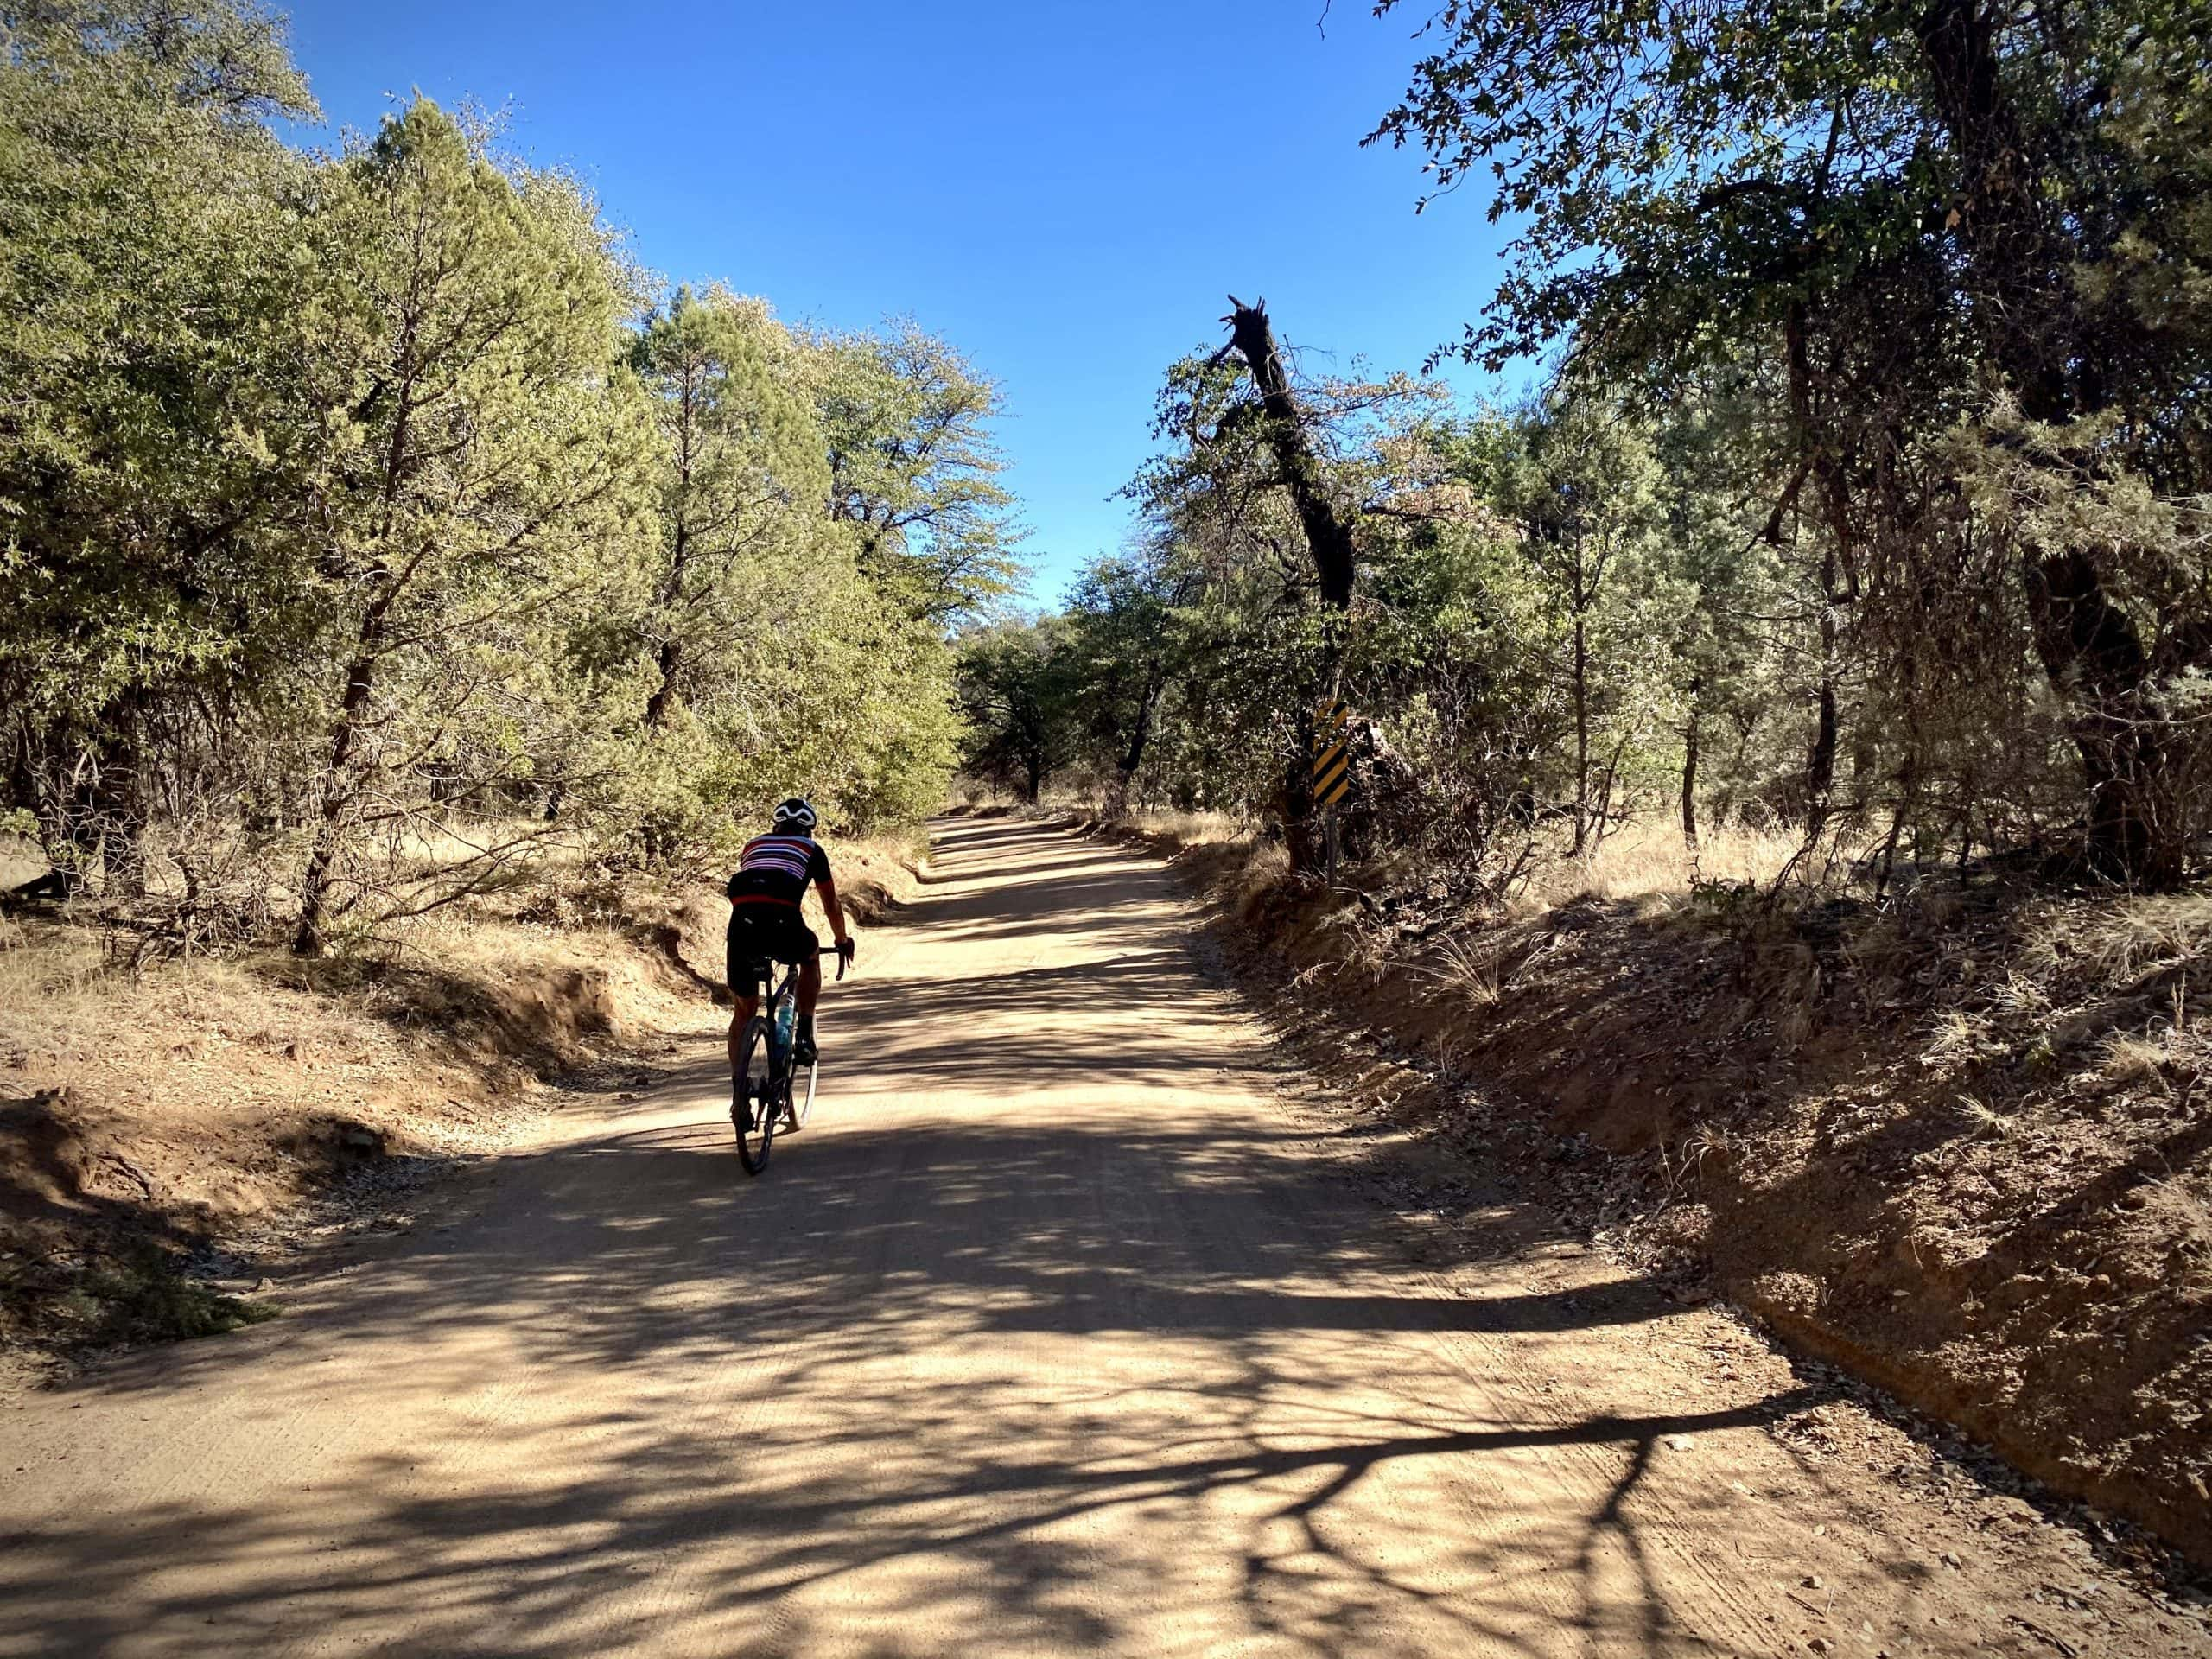 Cyclist on Apache road near the ghost town of Mowry.